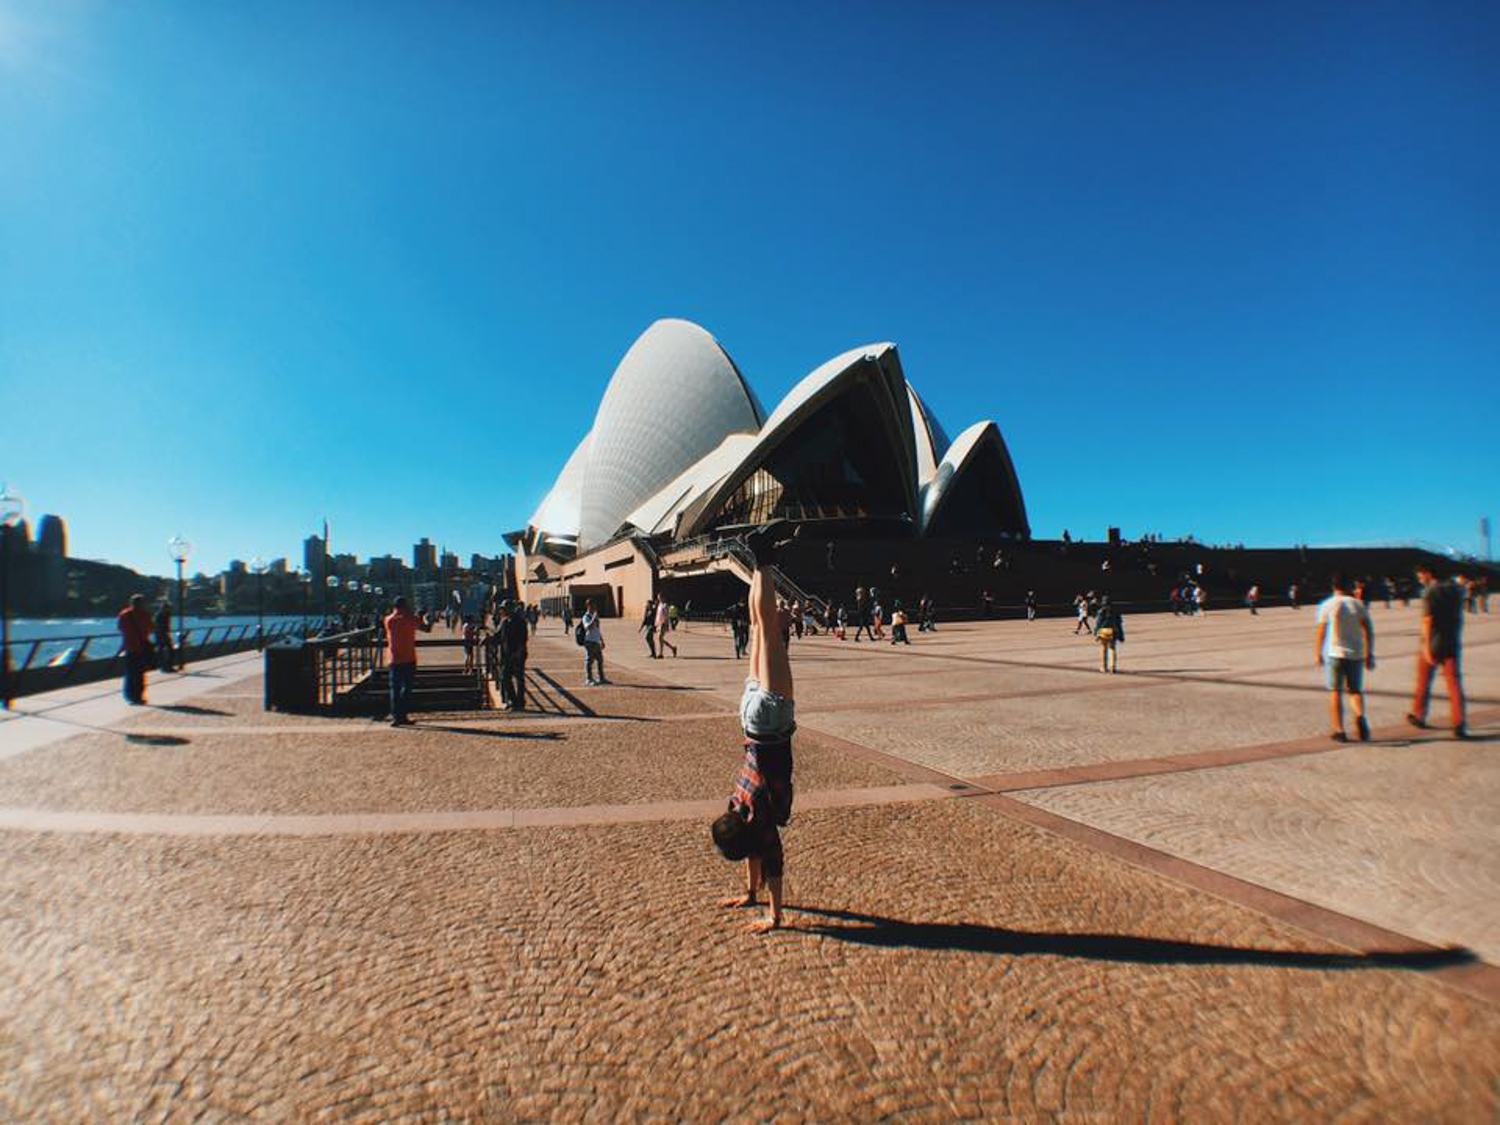 Handstands at the Sydney Opera House in Australia